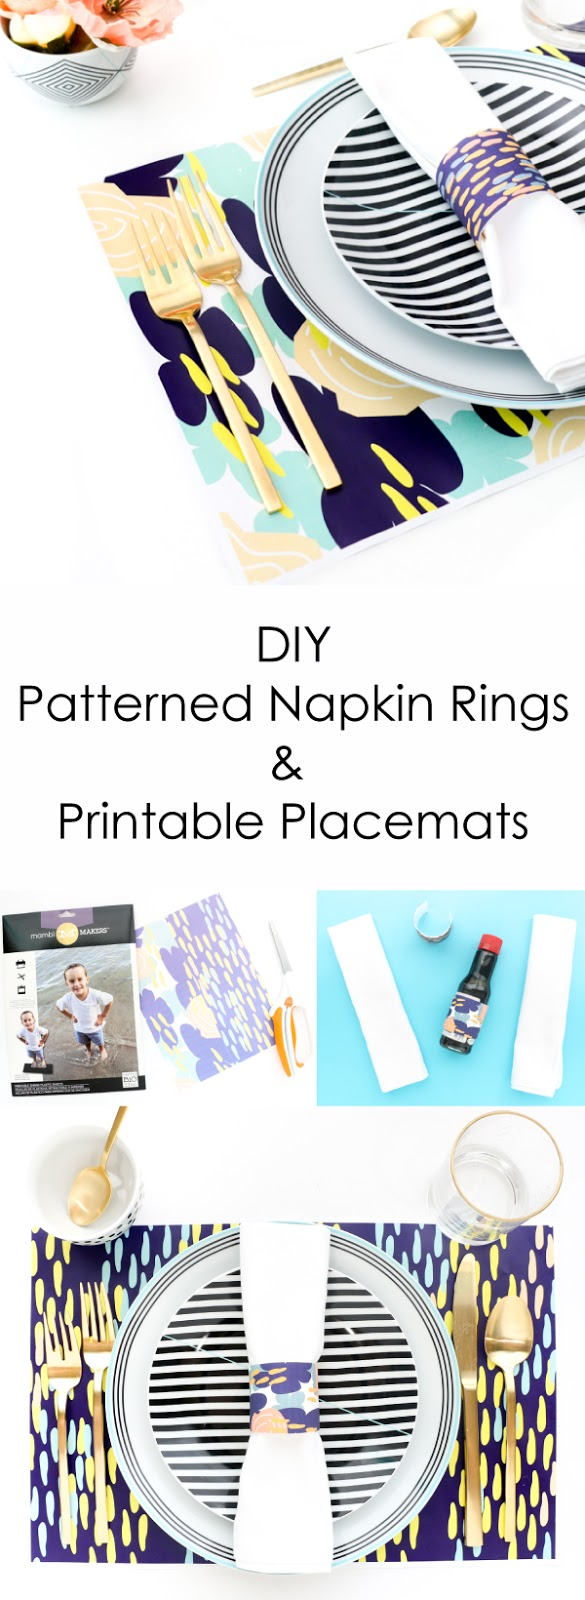 DIY Patterned napkin rings and free printable placemat for your next dinner party table setting - Cheeky for Target Porcelain dinner ware collection - Craft - hostess gift - gift idea - party decorations - DIY party decor